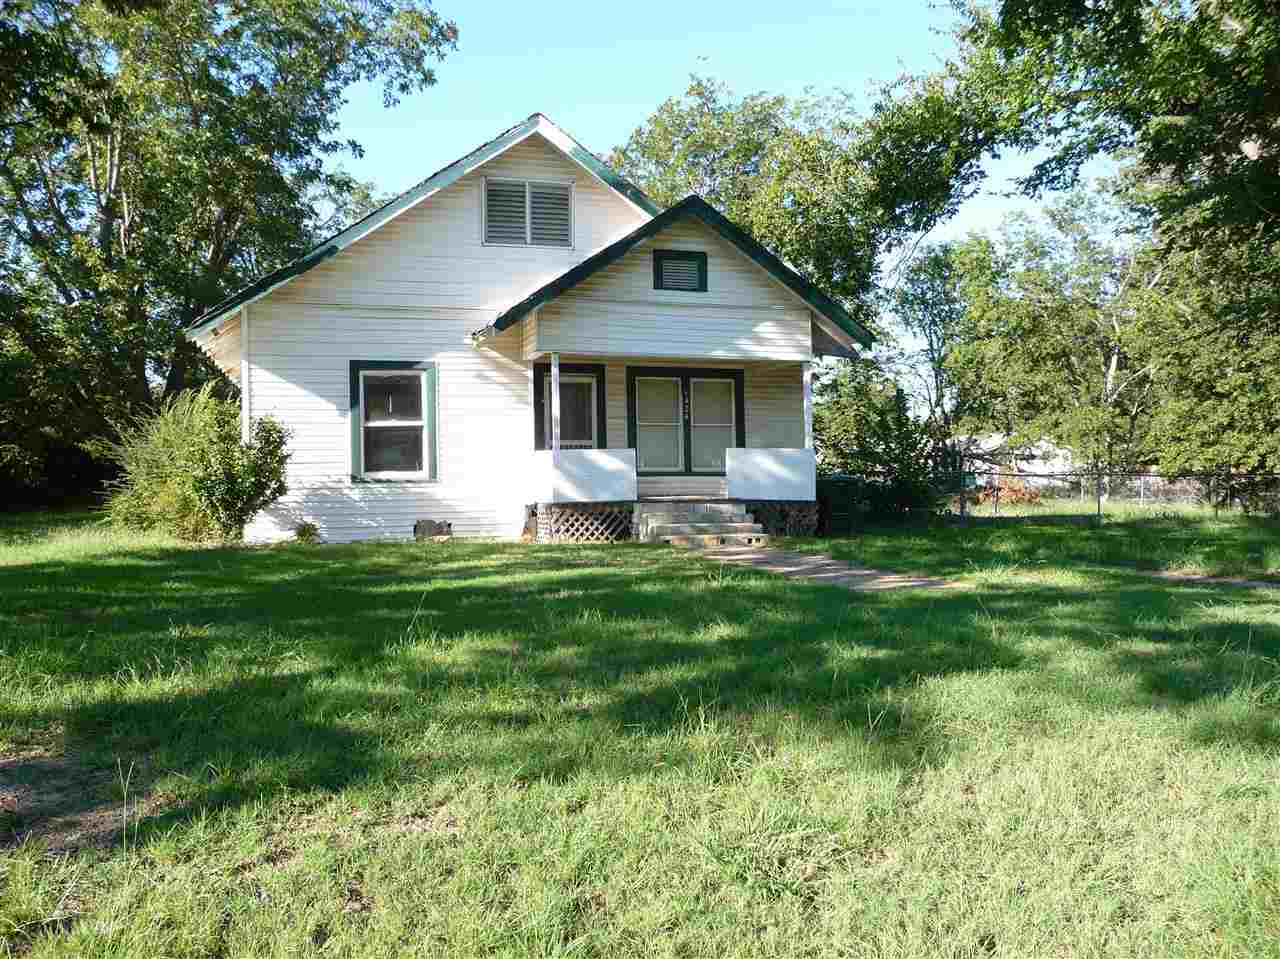 1424 W Mulberry St, Durant, OK 74701